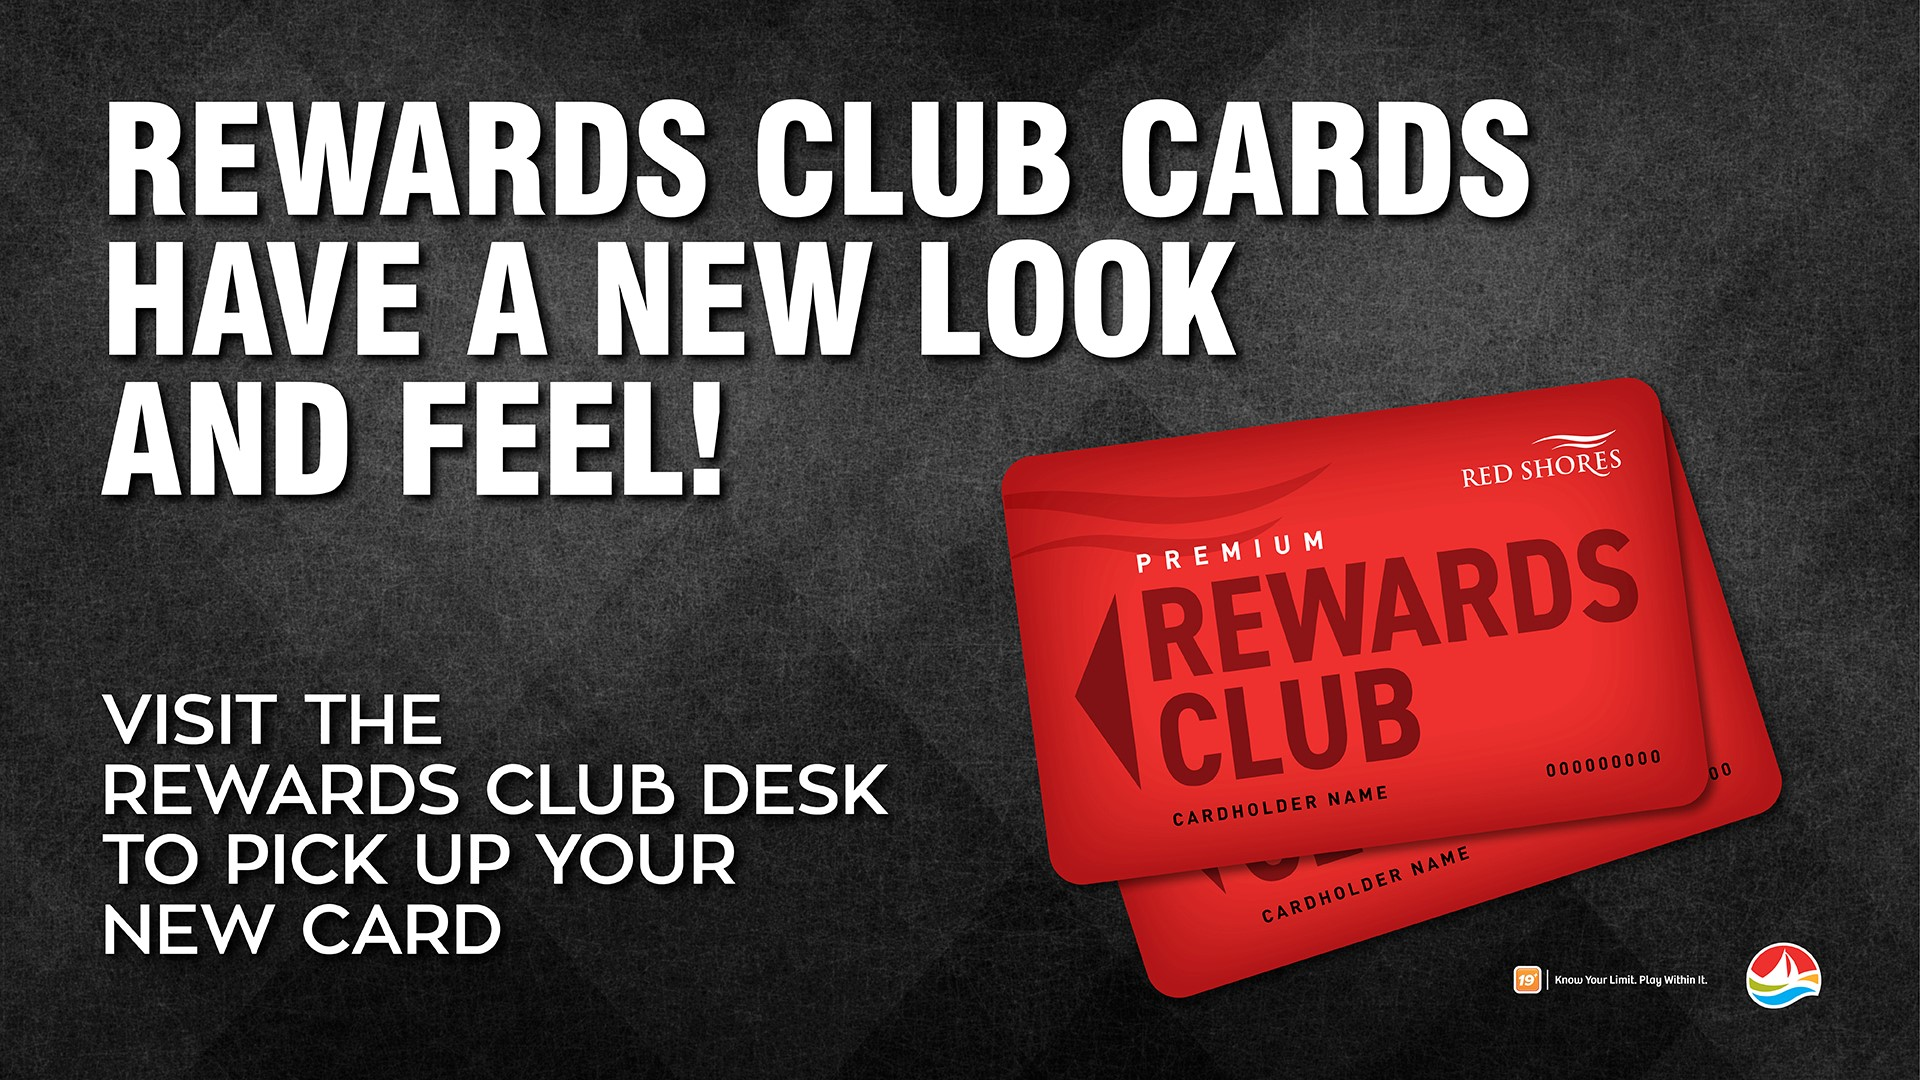 red shores racetrack and casino - rewards club